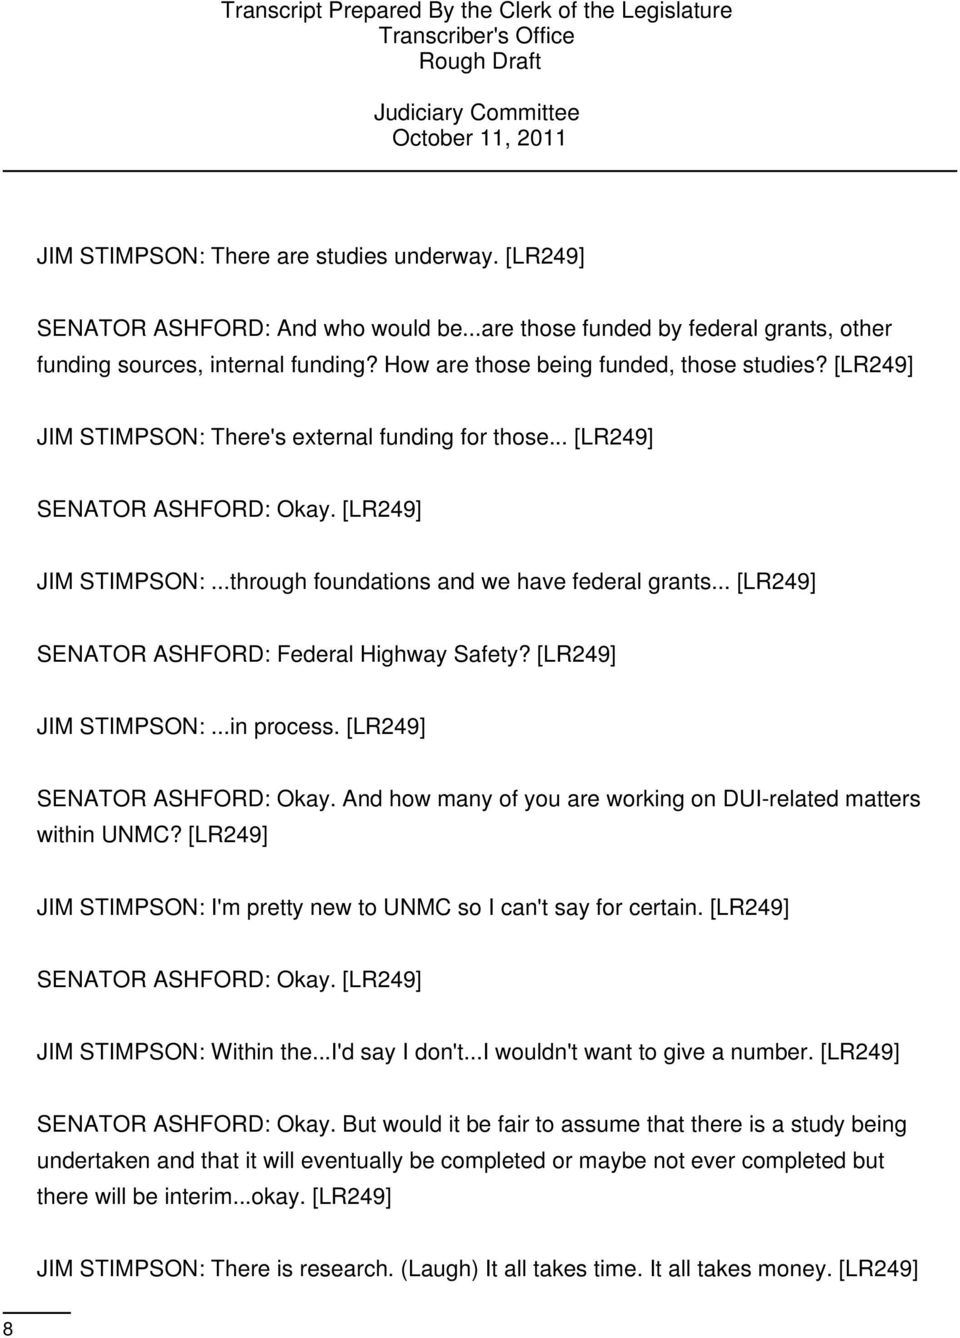 .. [LR249] SENATOR ASHFORD: Federal Highway Safety? [LR249] JIM STIMPSON:...in process. [LR249] SENATOR ASHFORD: Okay. And how many of you are working on DUI-related matters within UNMC?